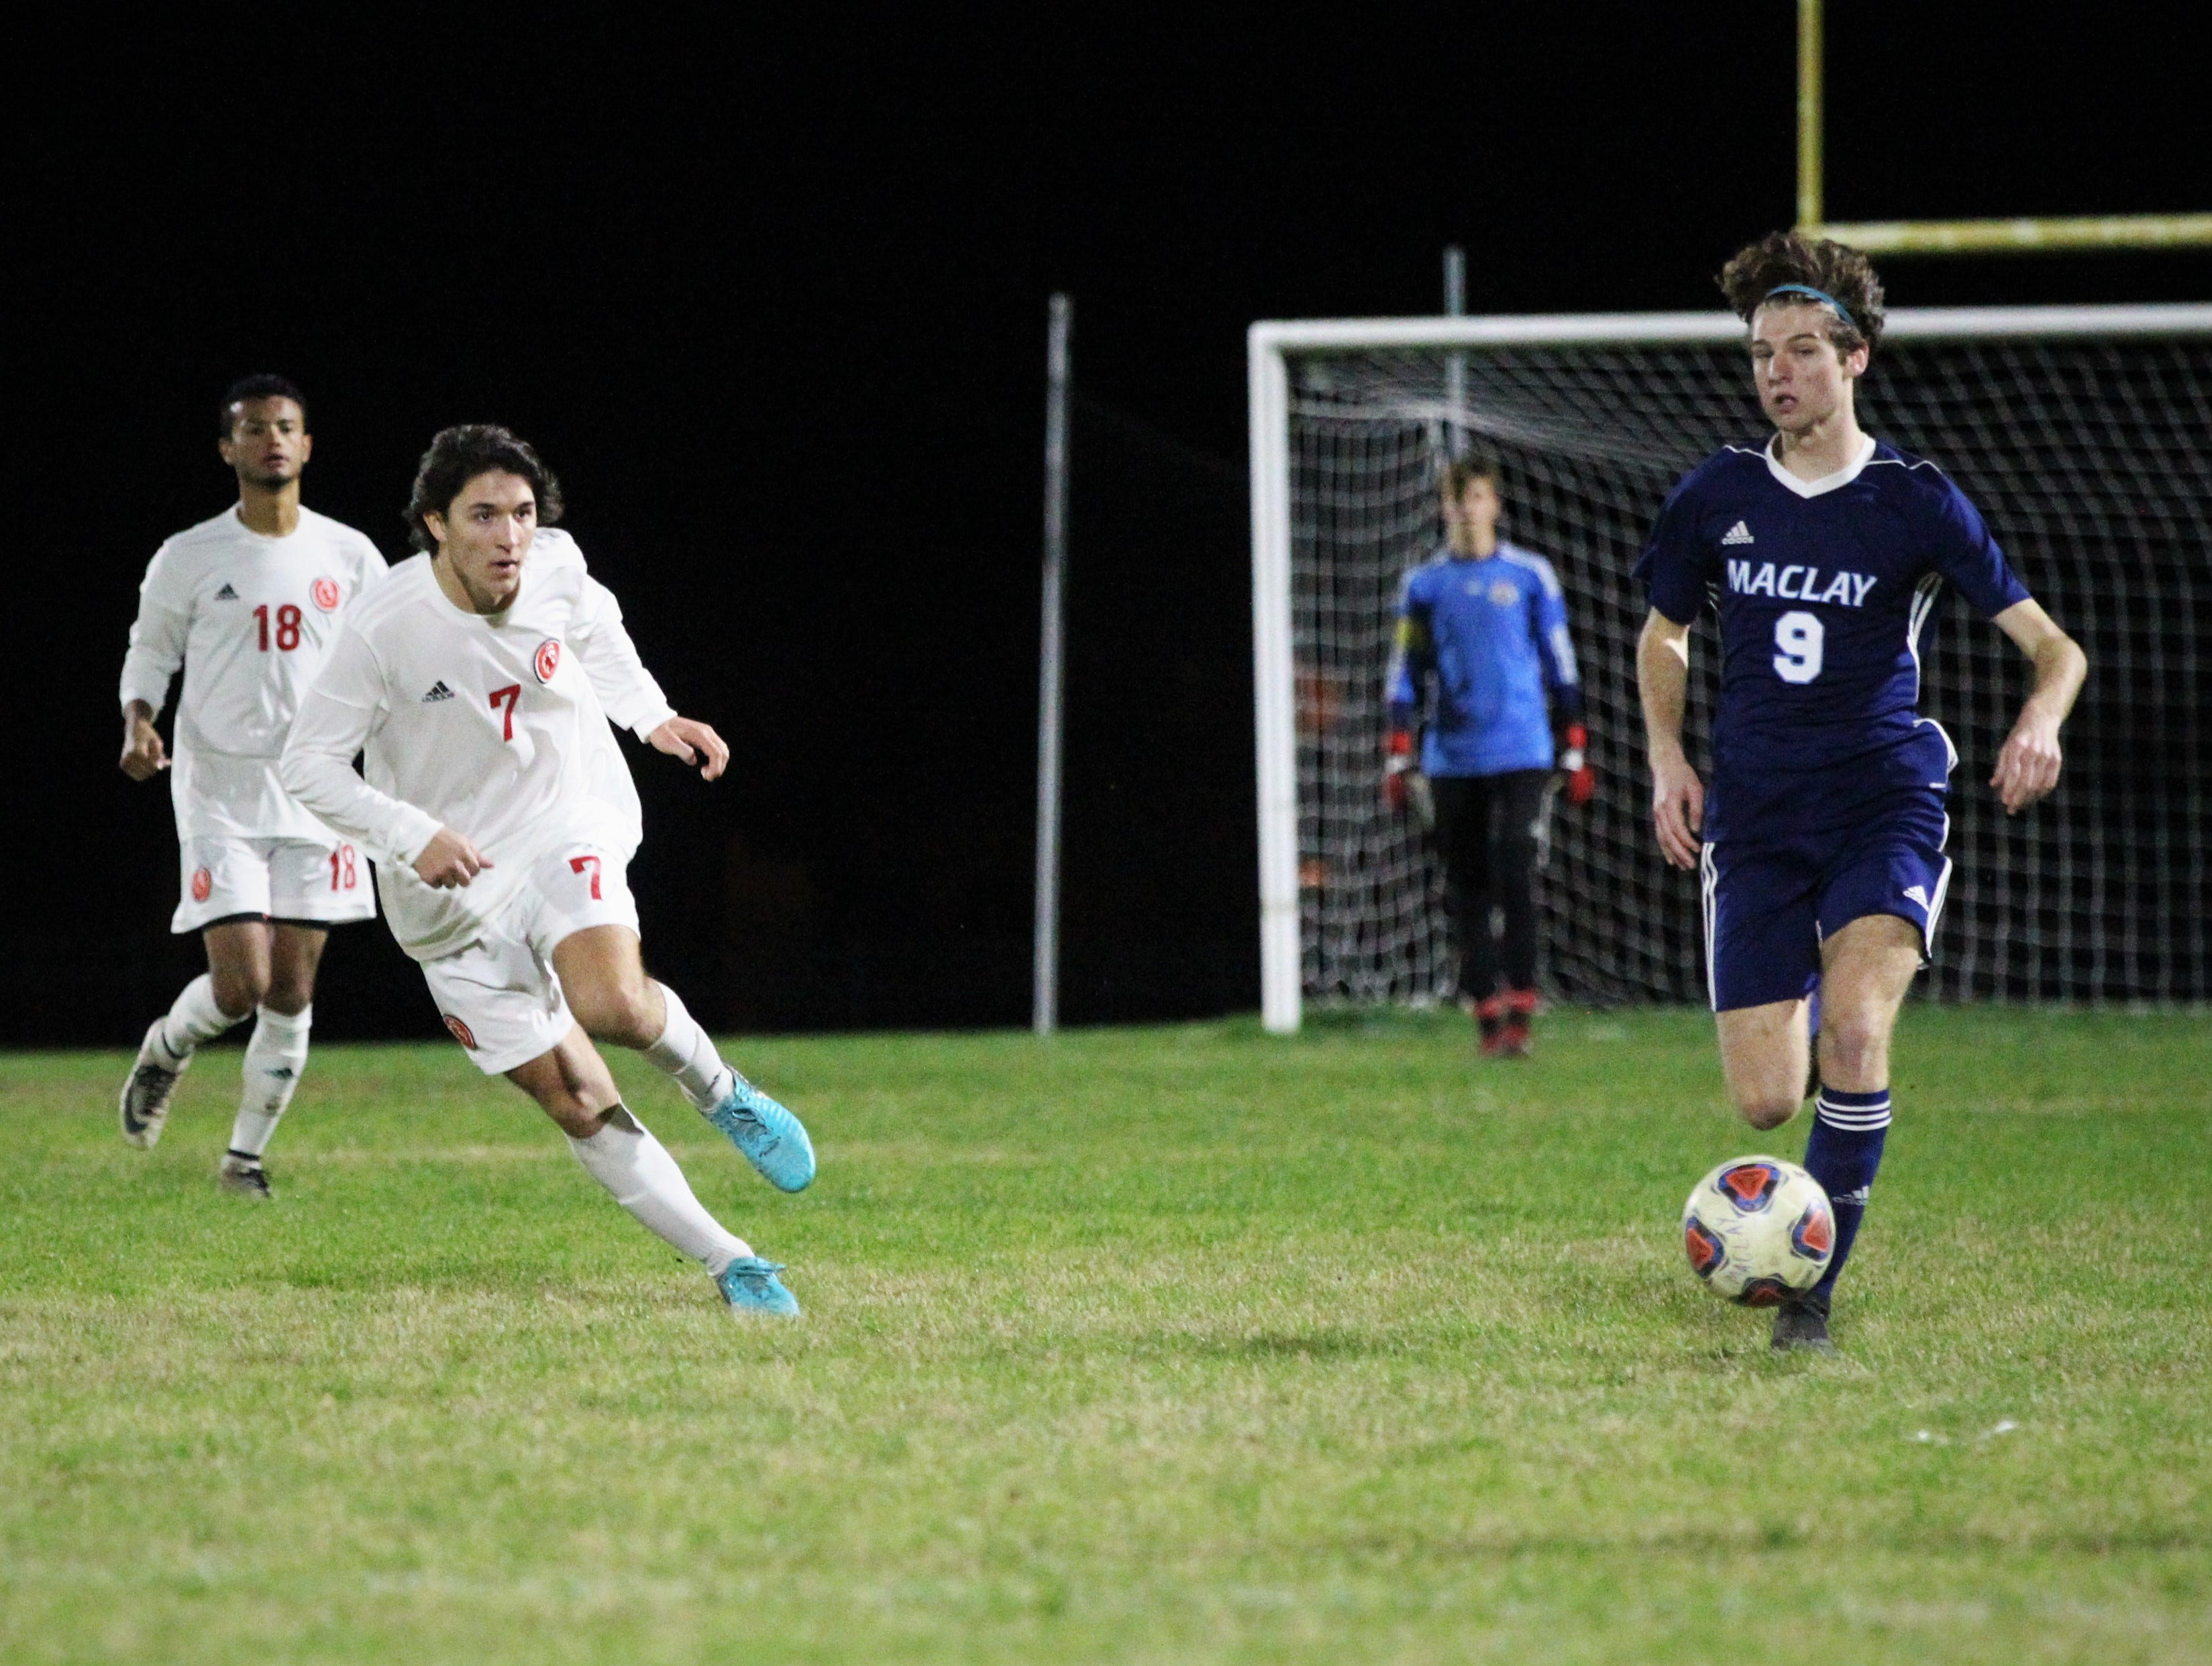 Maclay's Andrew Rentz dribbles up the field as Leon's boys soccer team beat Maclay 3-1 on Jan. 22, 2019.